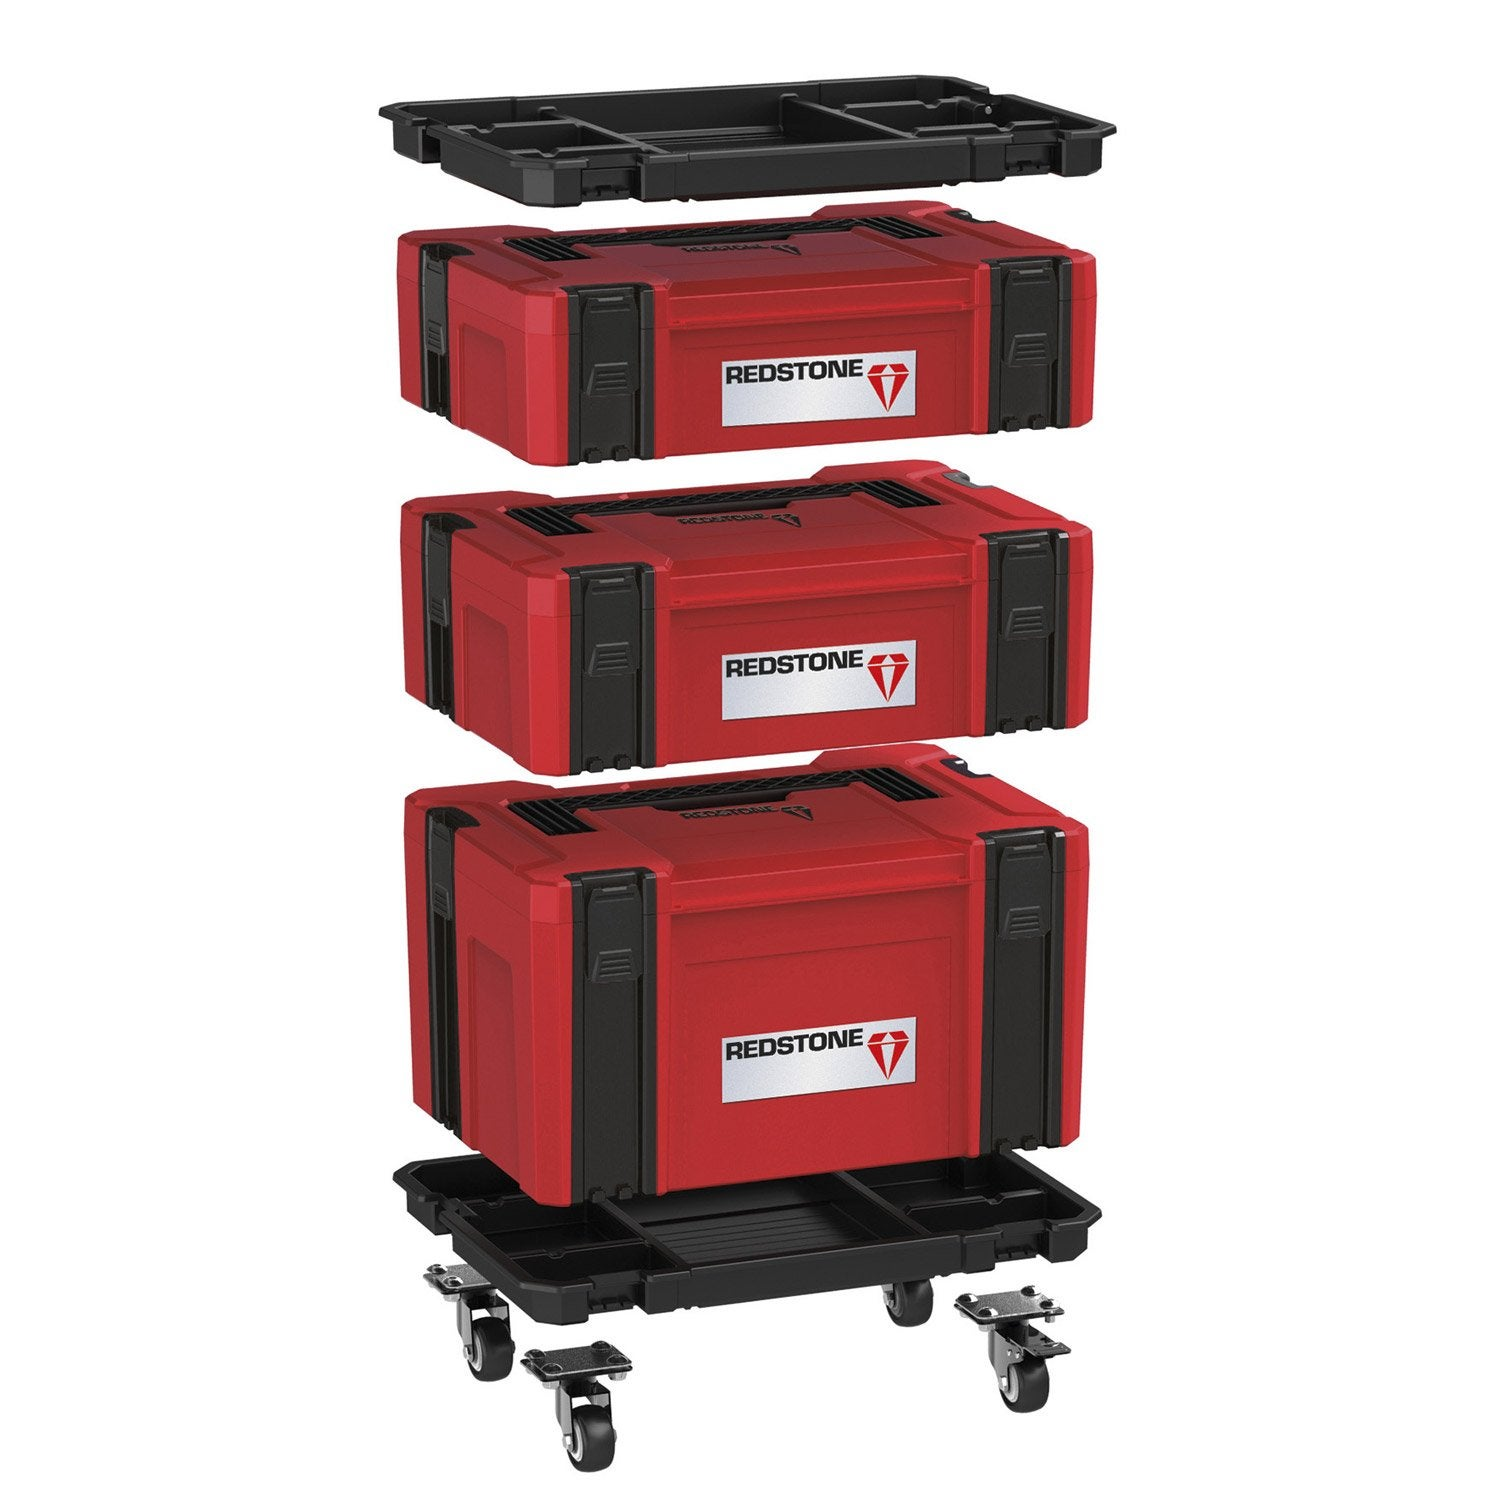 Kit Systembox Empilable Bo Tes Outils Lectroportatifs Redstone 31 5 Cm Leroy Merlin